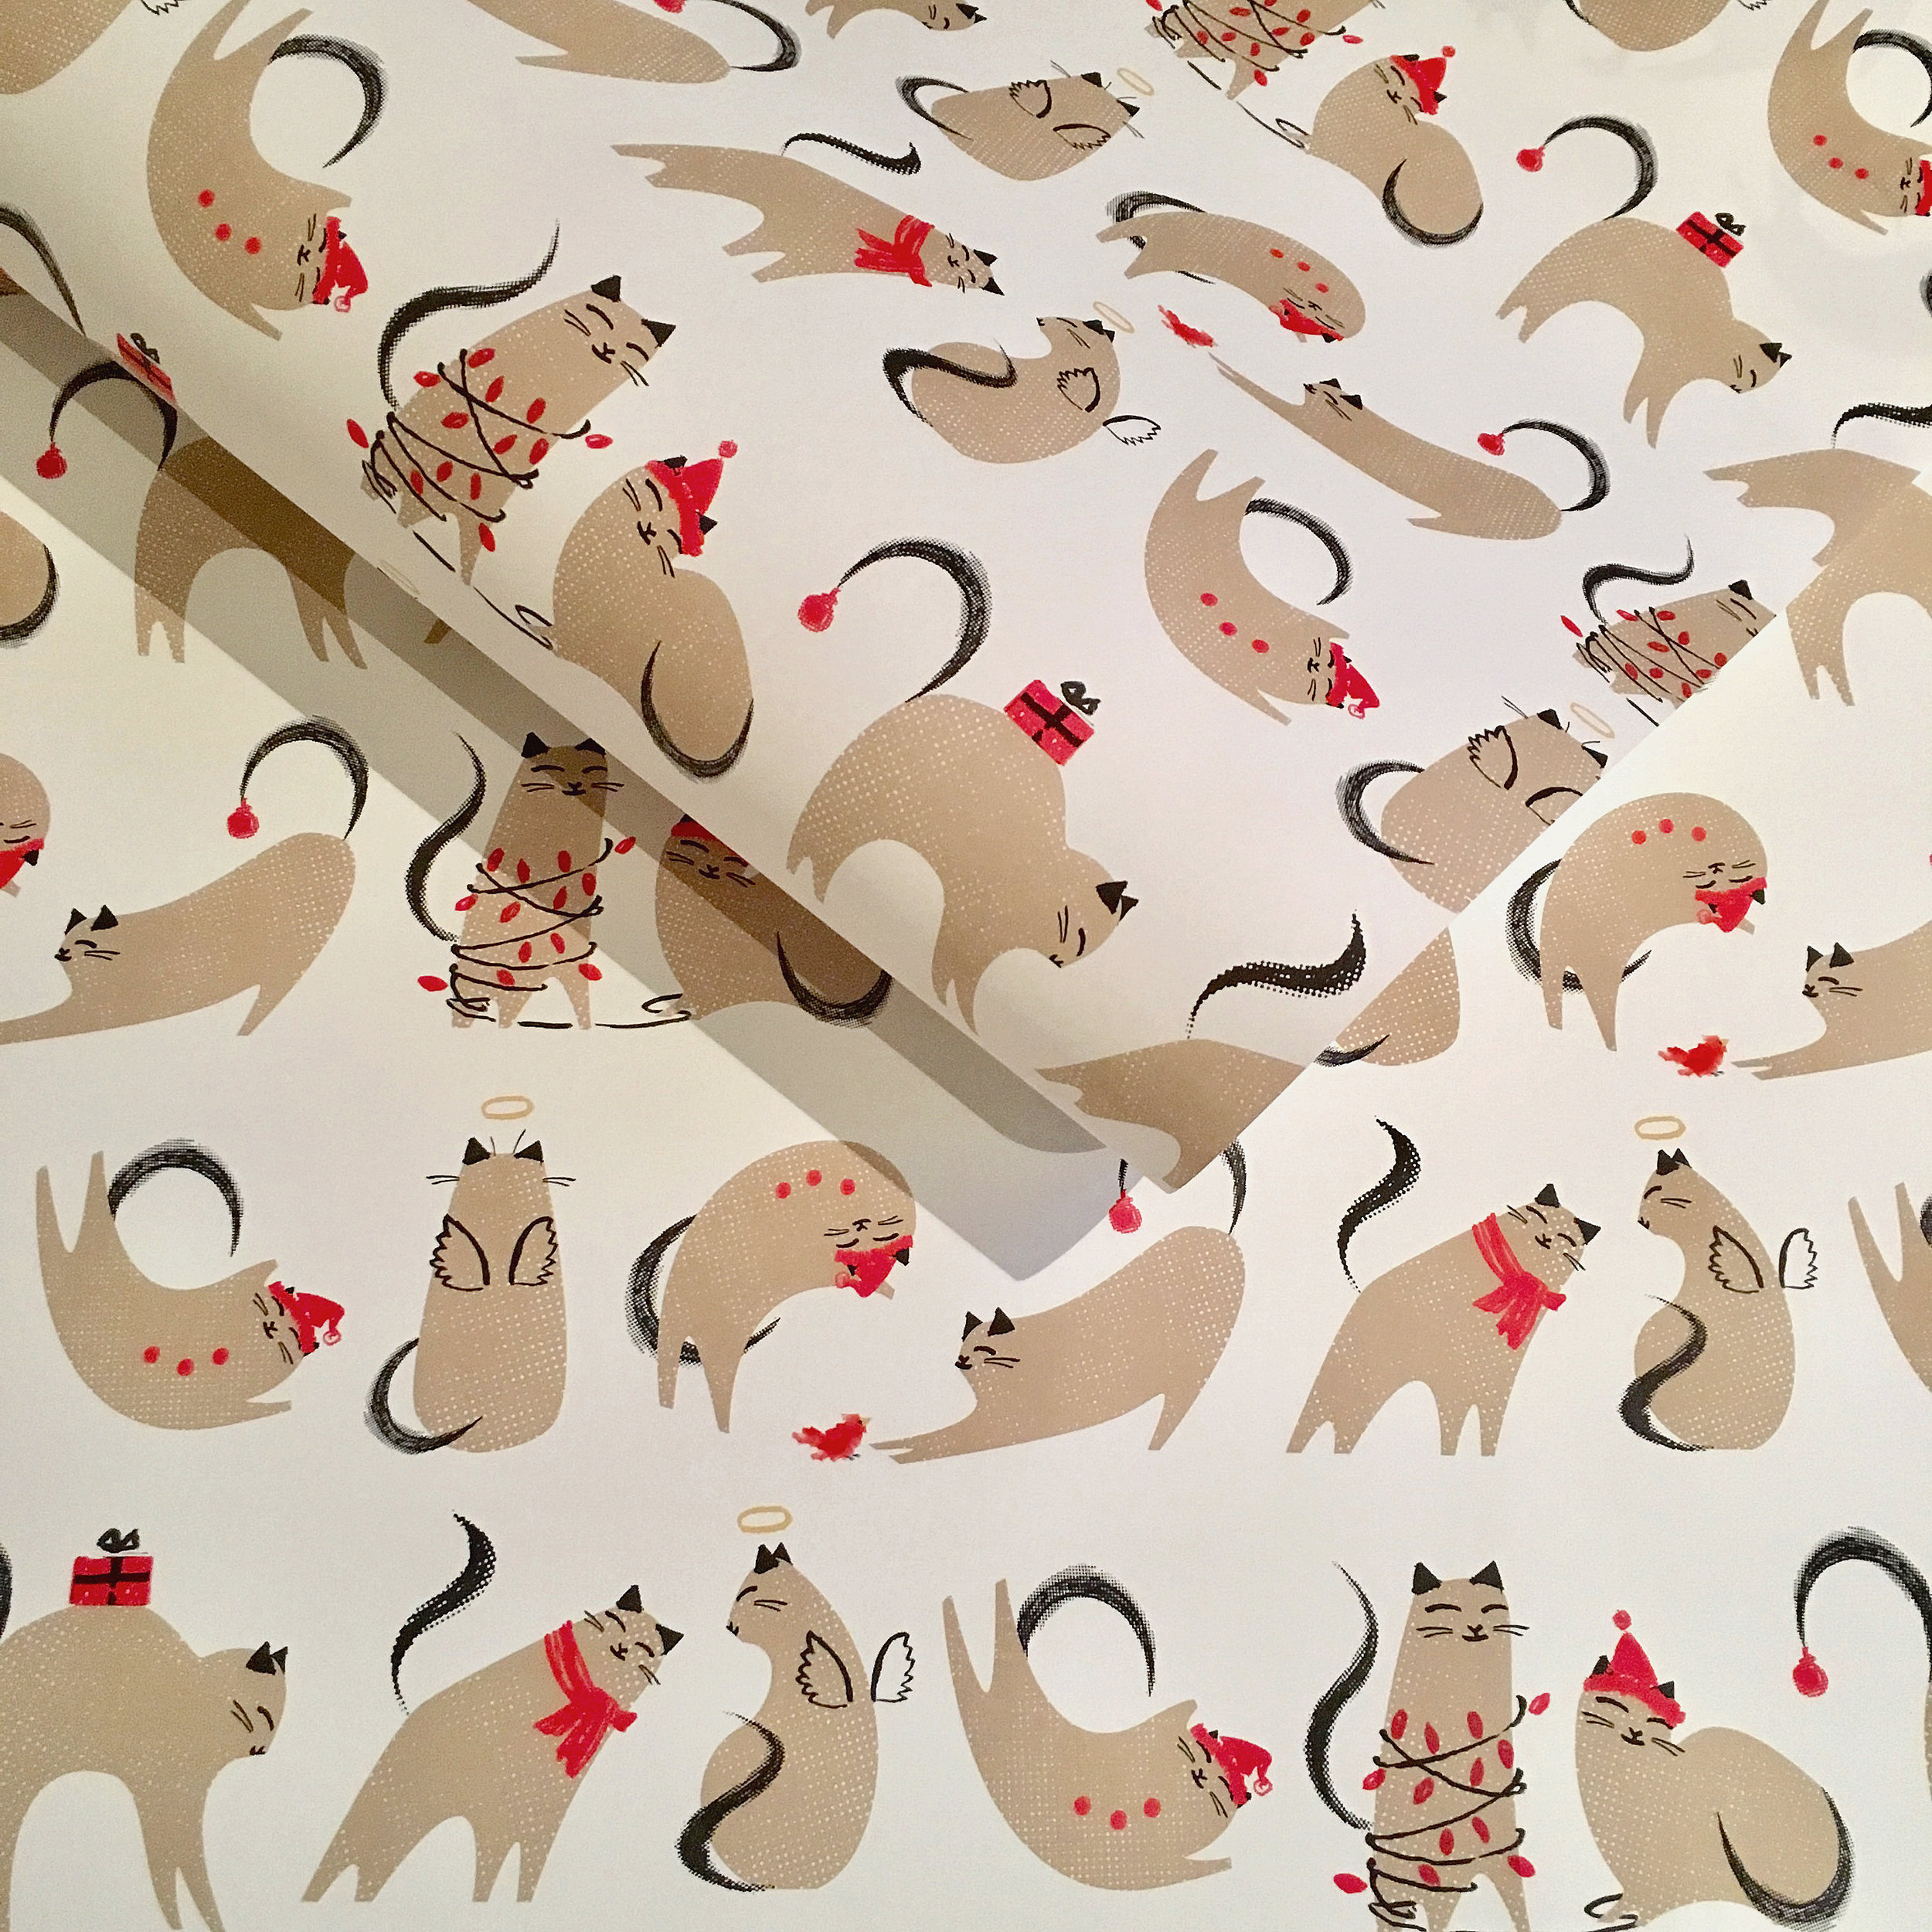 Christmas cat wrapping paper: WP_KCXC_04